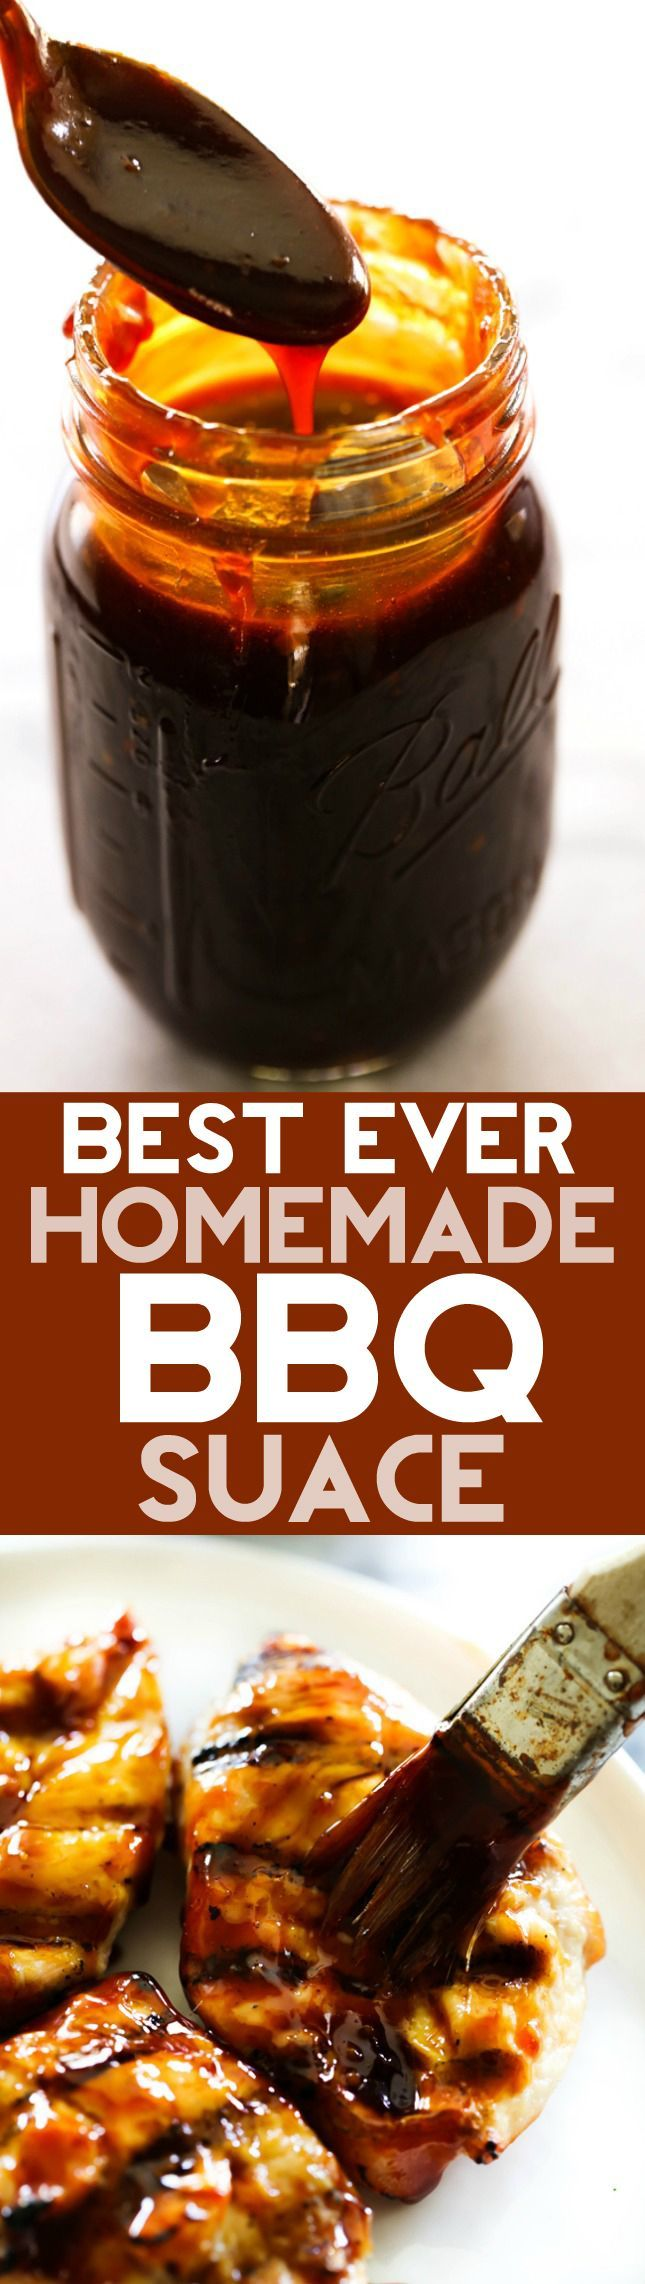 ***BEST EVER Homemade BBQ Sauce ~ this will be THE BEST BBQ Sauce you ever have! It is deliciously sweet and tangy with a flavor that can't be beat and is super easy to make!